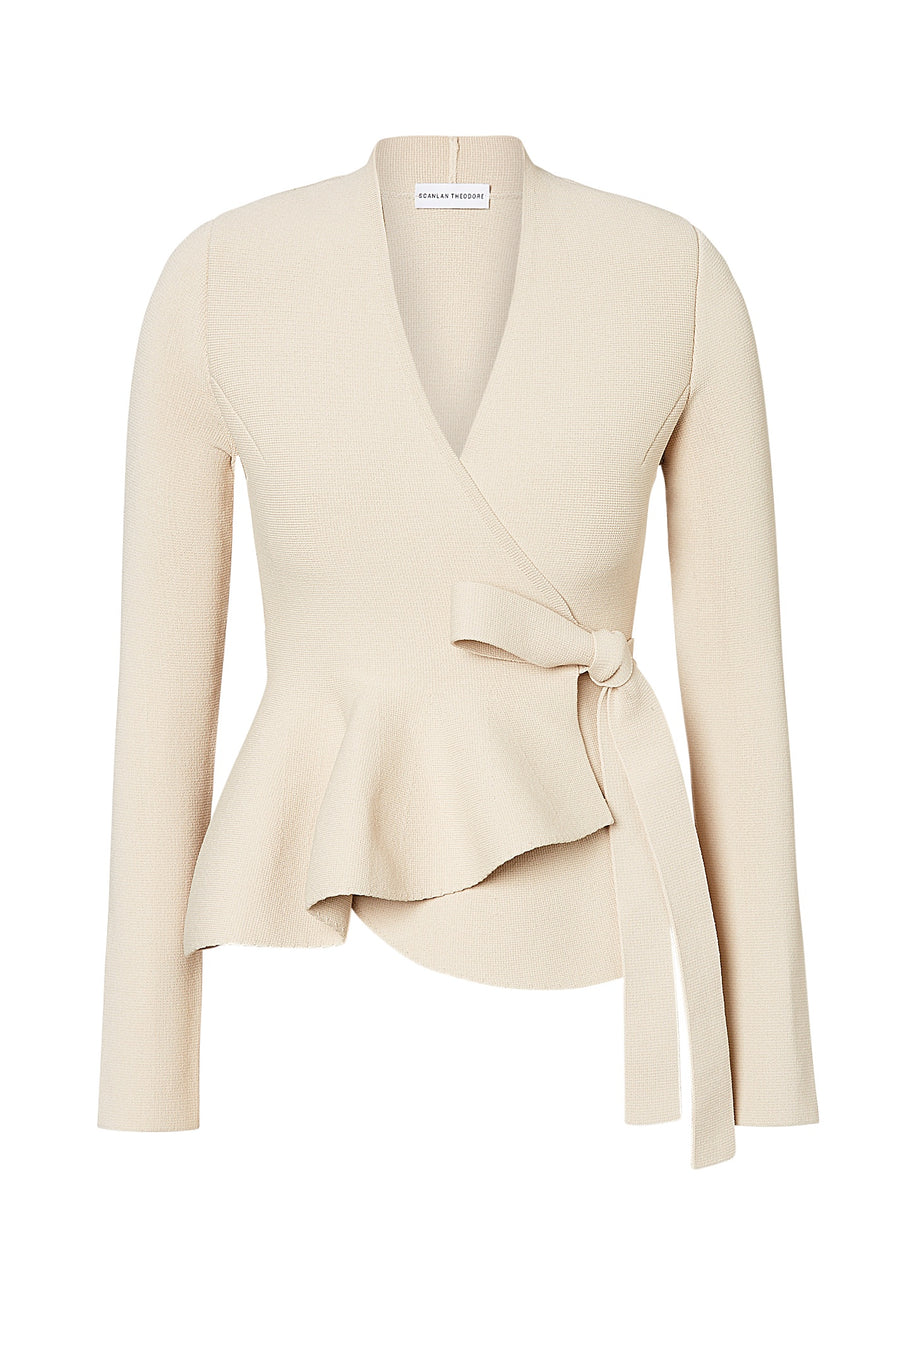 CREPE KNIT WRAP JACKET, Ruffle Peplum, Side Tie, Color Papiro